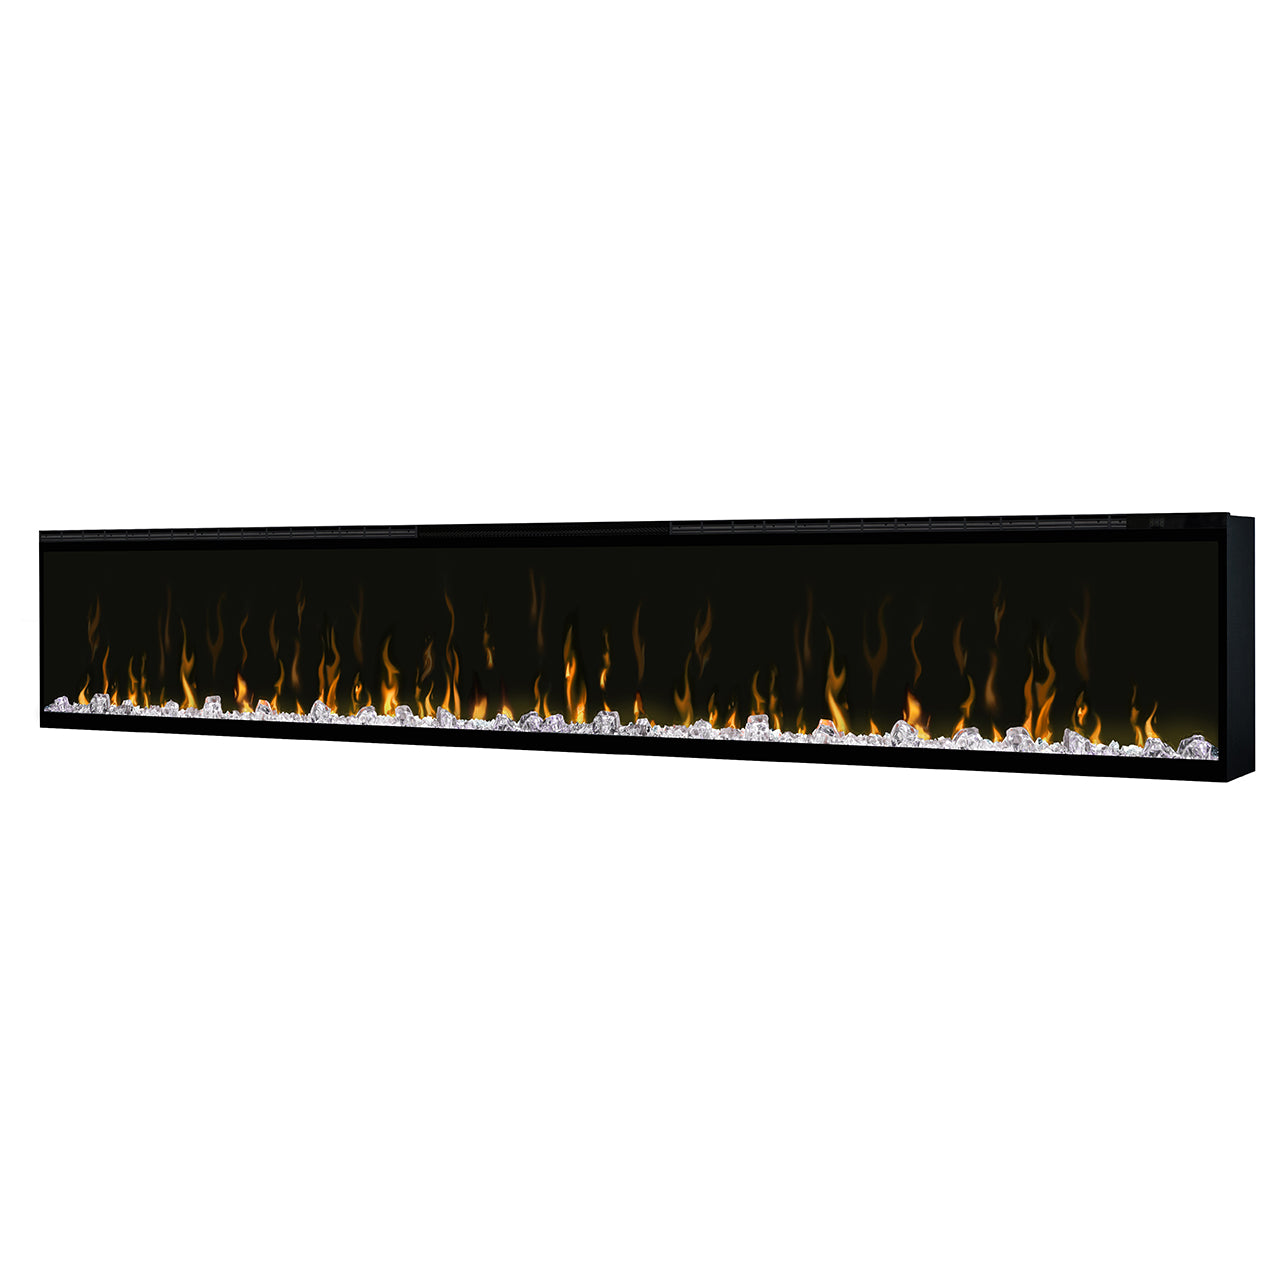 "IgniteXL® 100"" Linear Electric Fireplace"